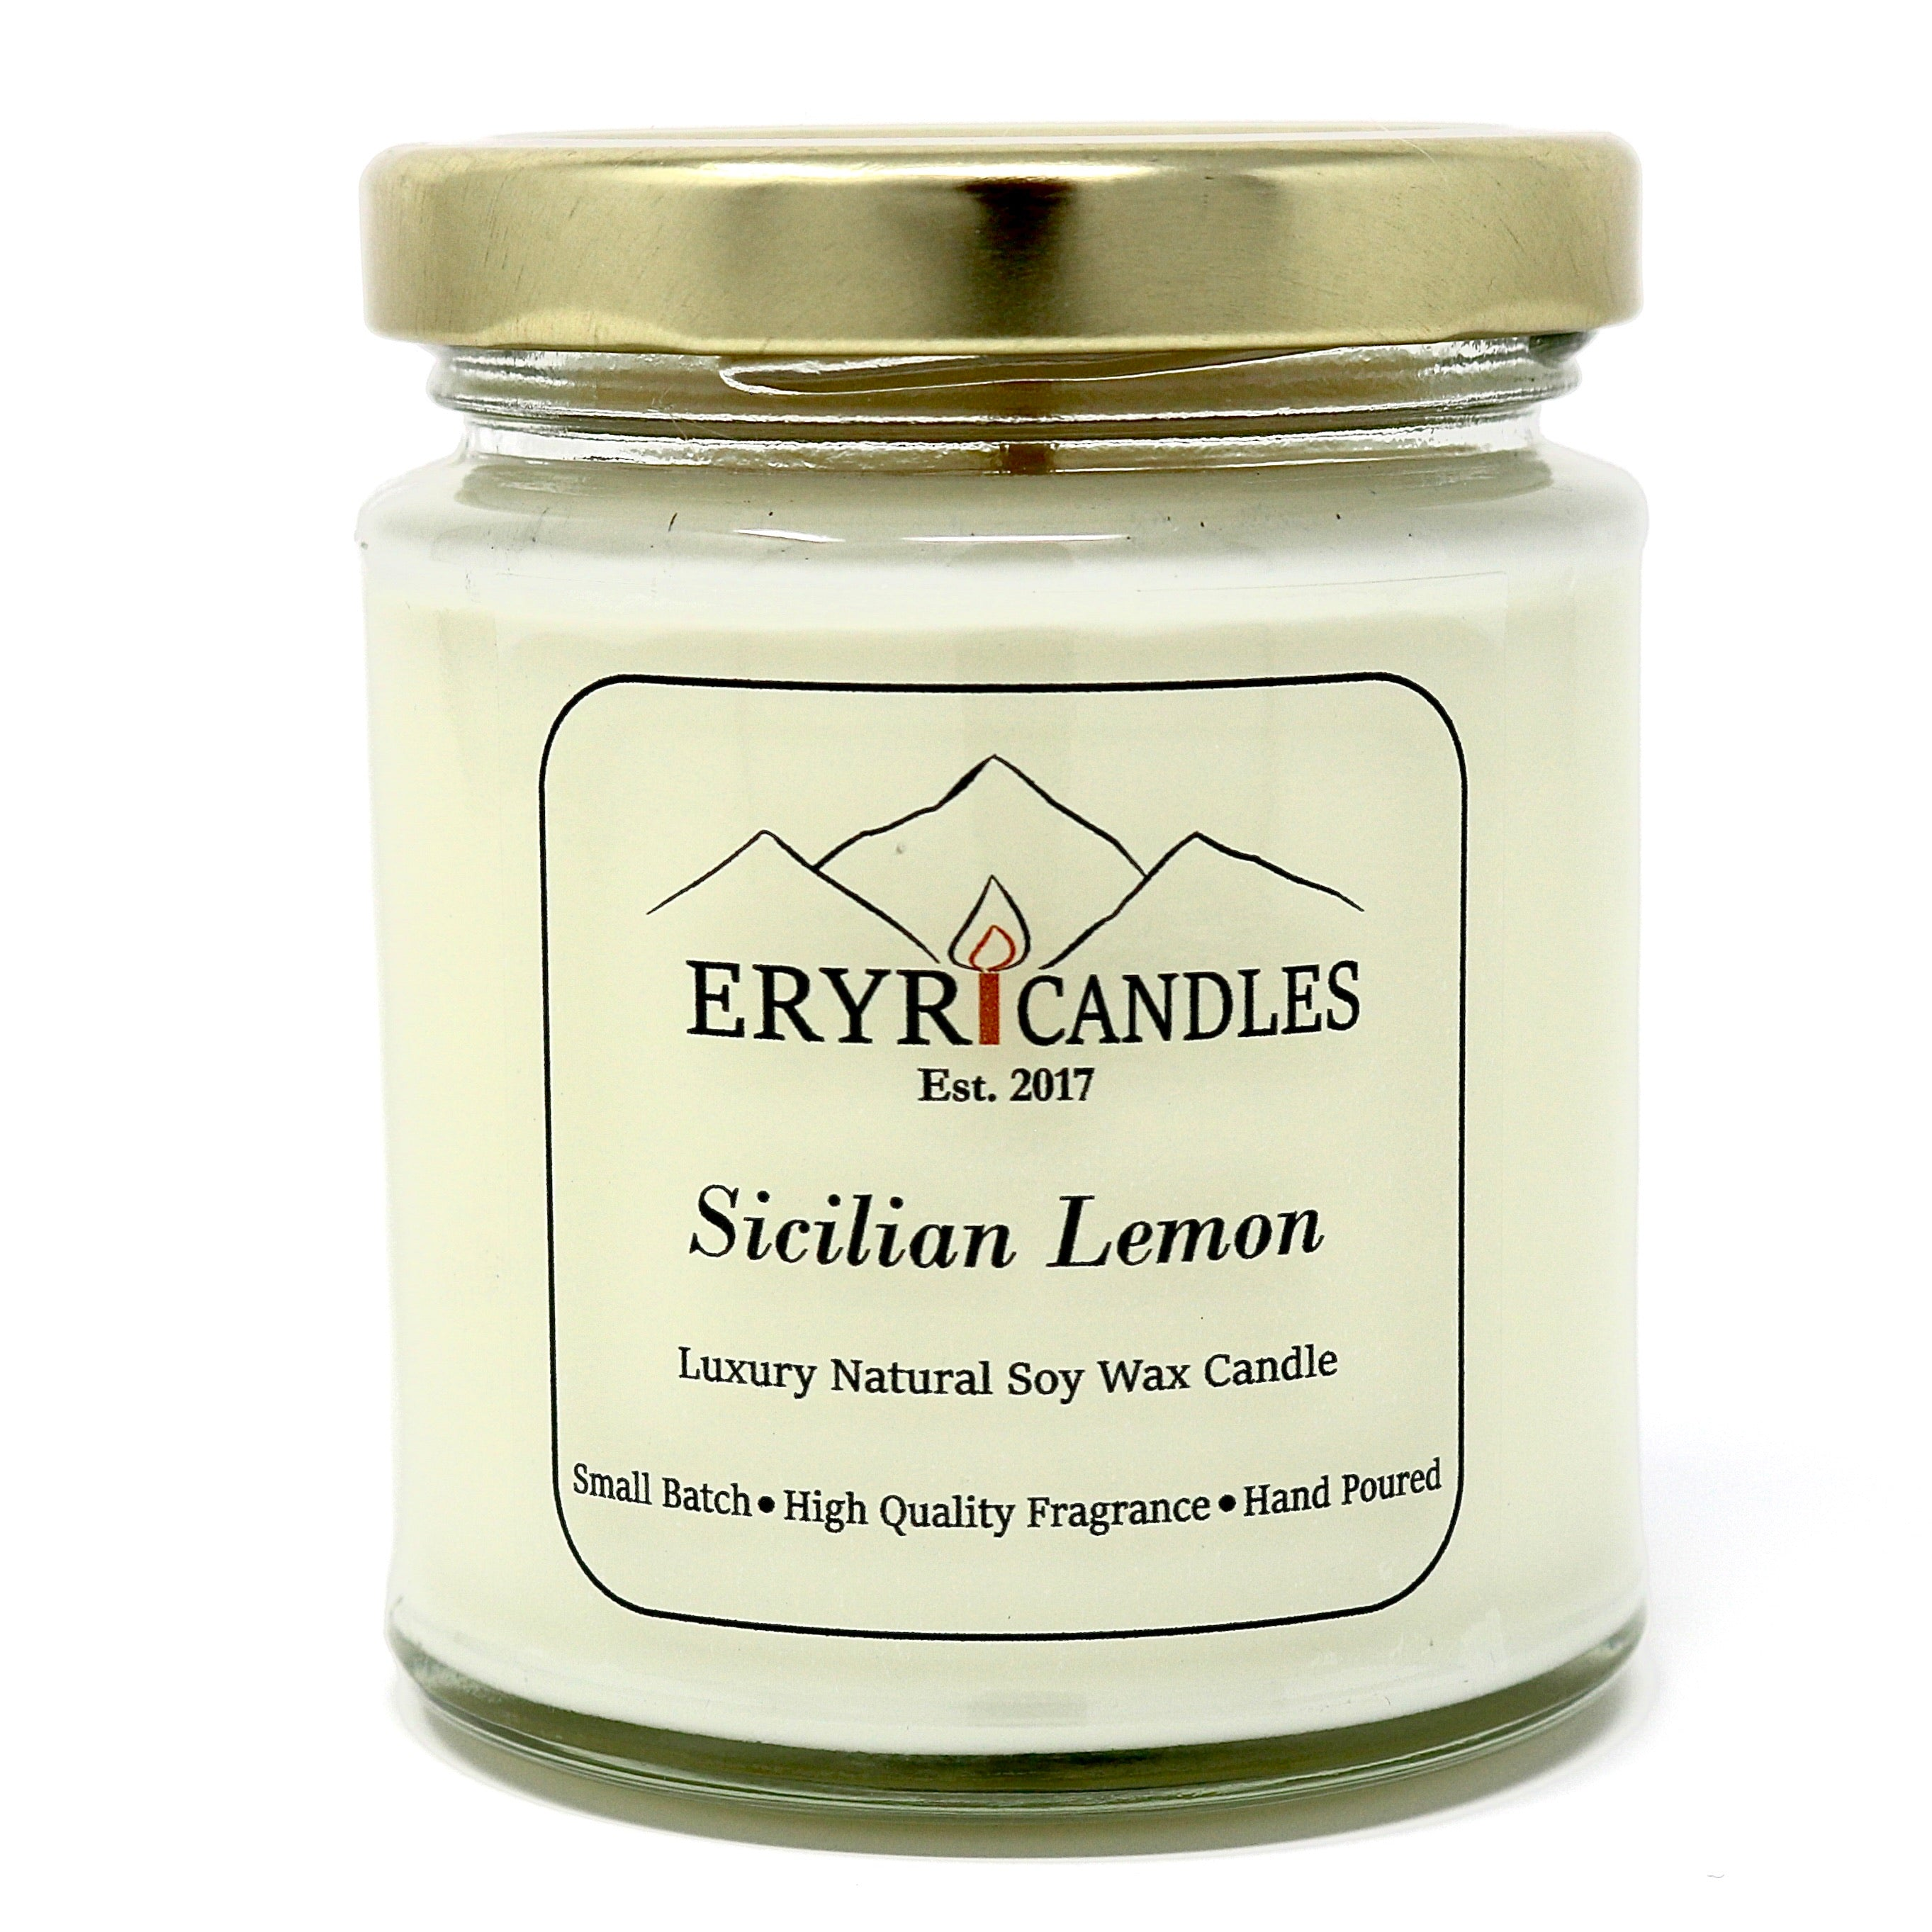 Sicilian Lemon Candles